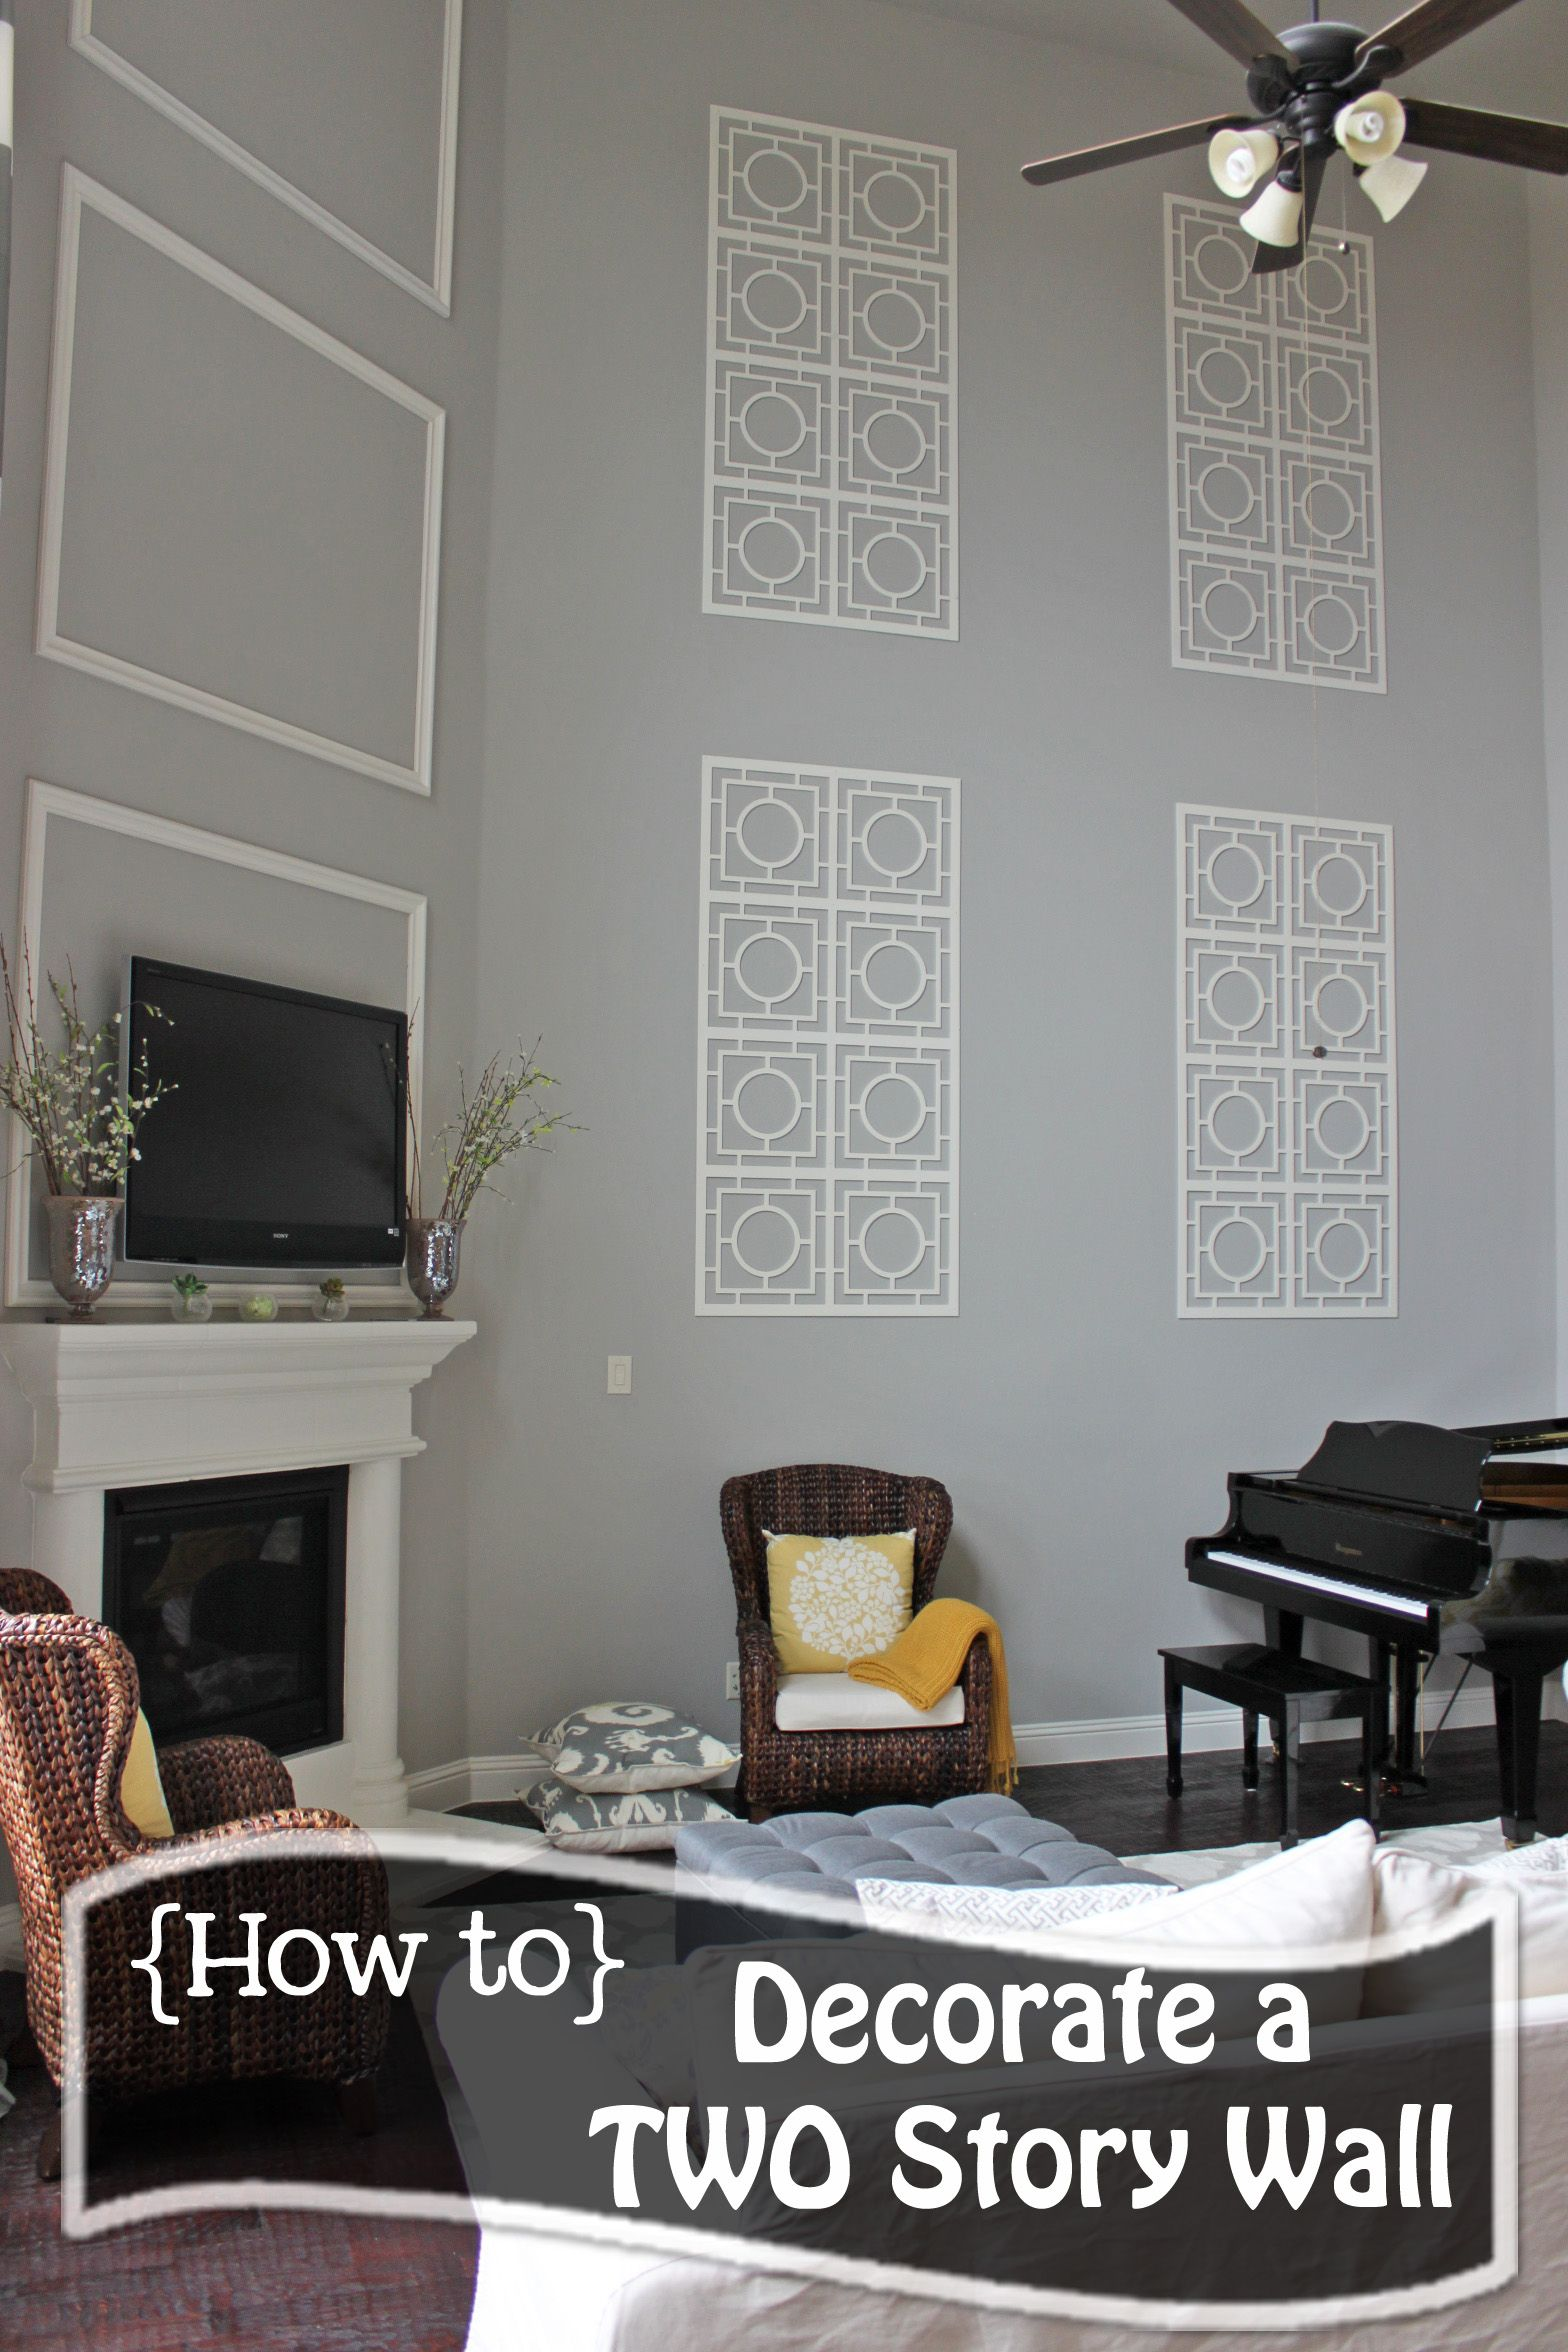 How To Decorate A Large Bedroom Wall How To Decorate A Two Story Wall What To Do With Those